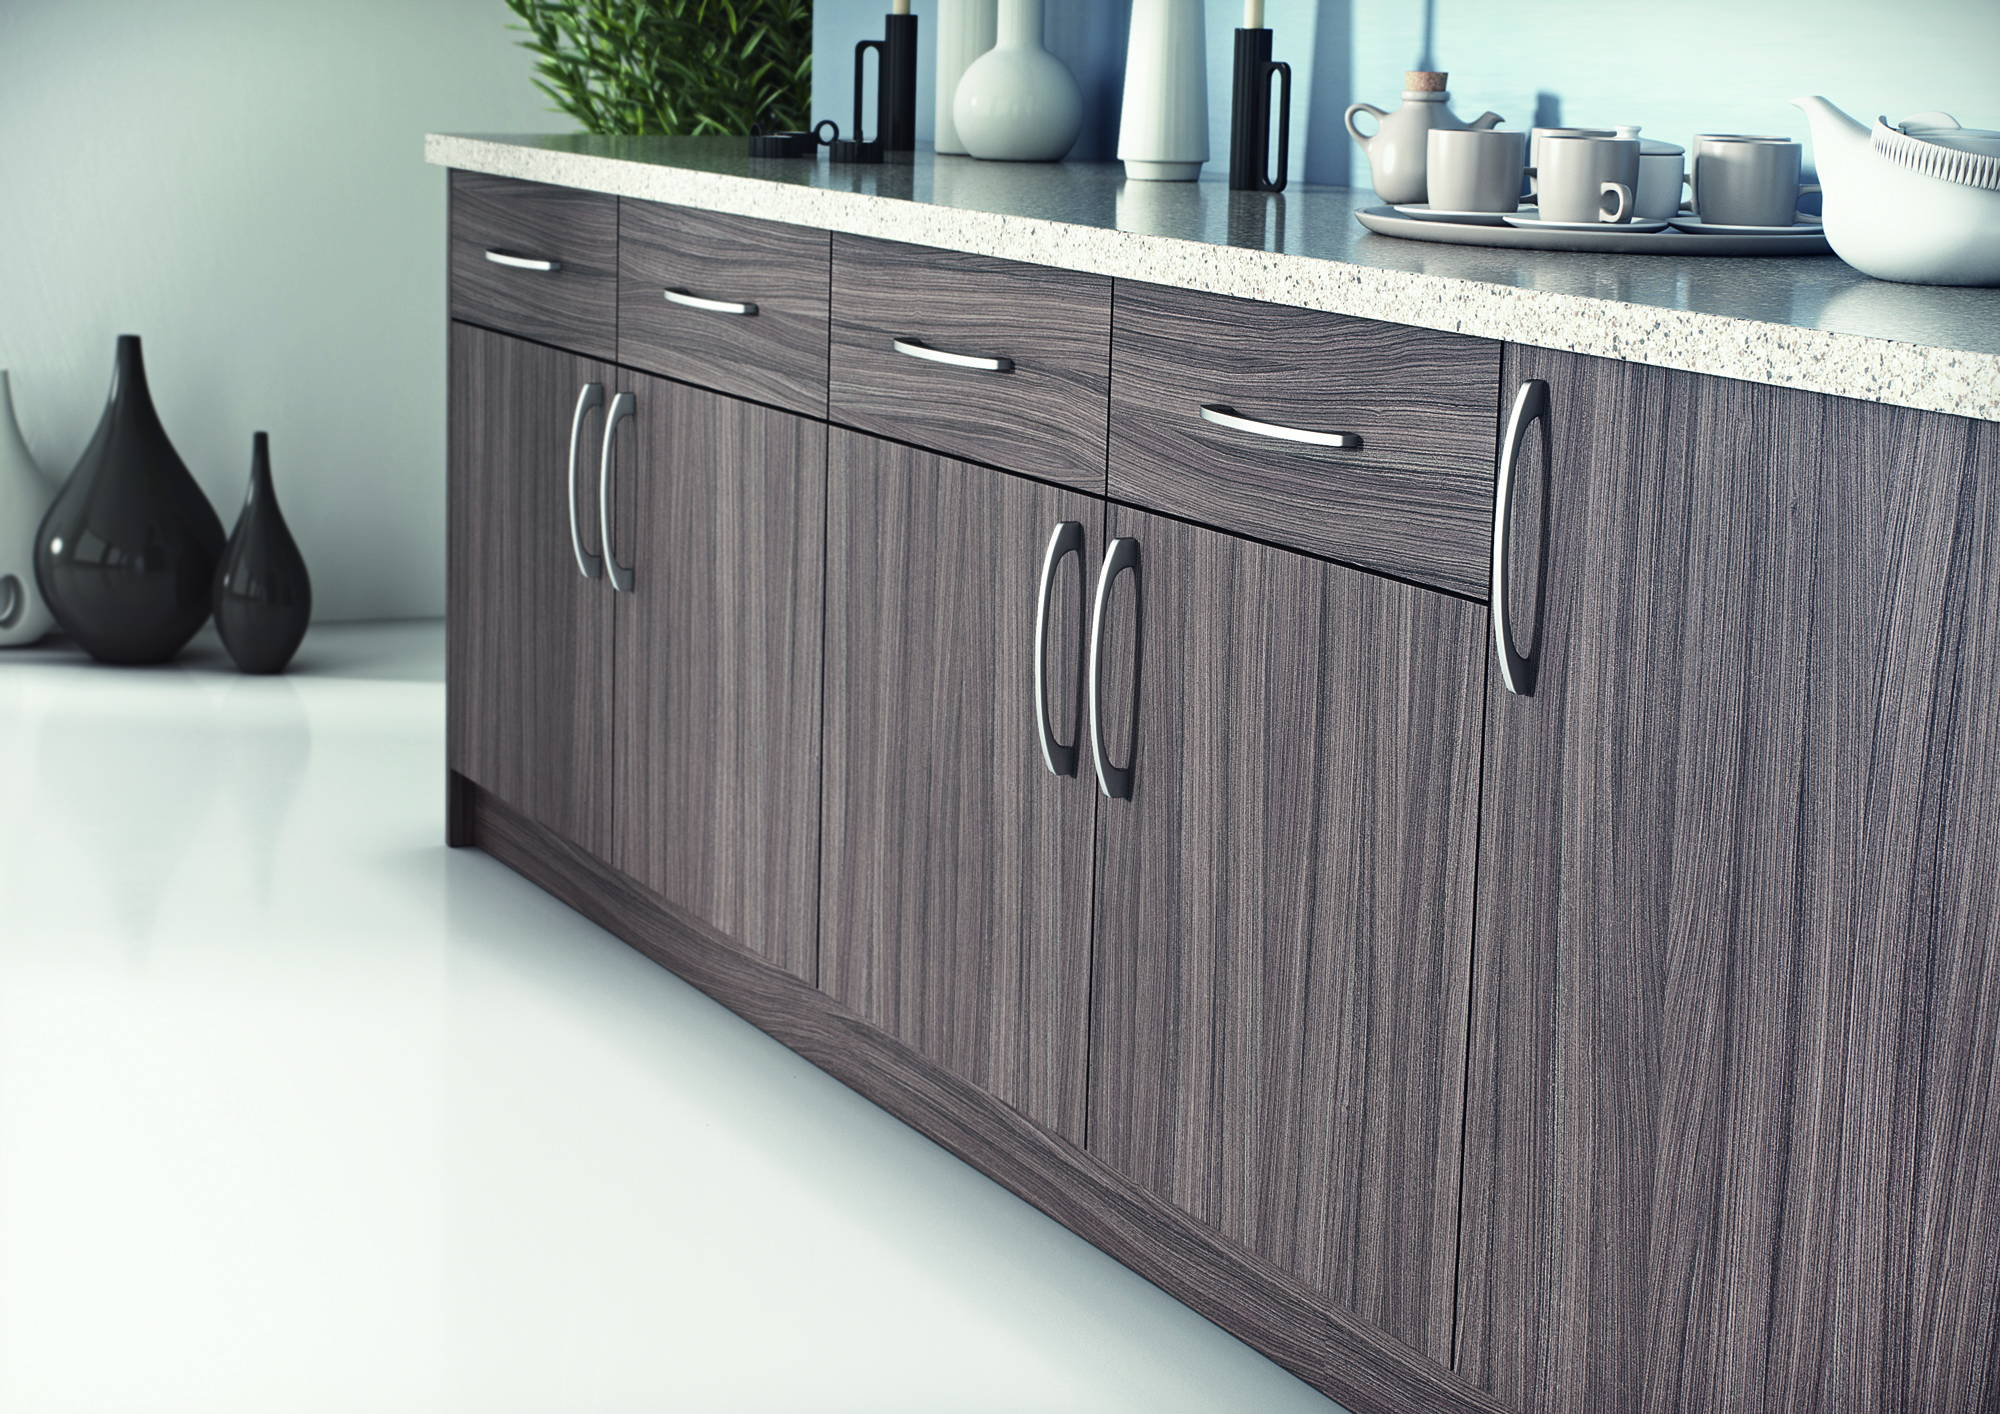 wood finish cupboard doors and drawer fronts